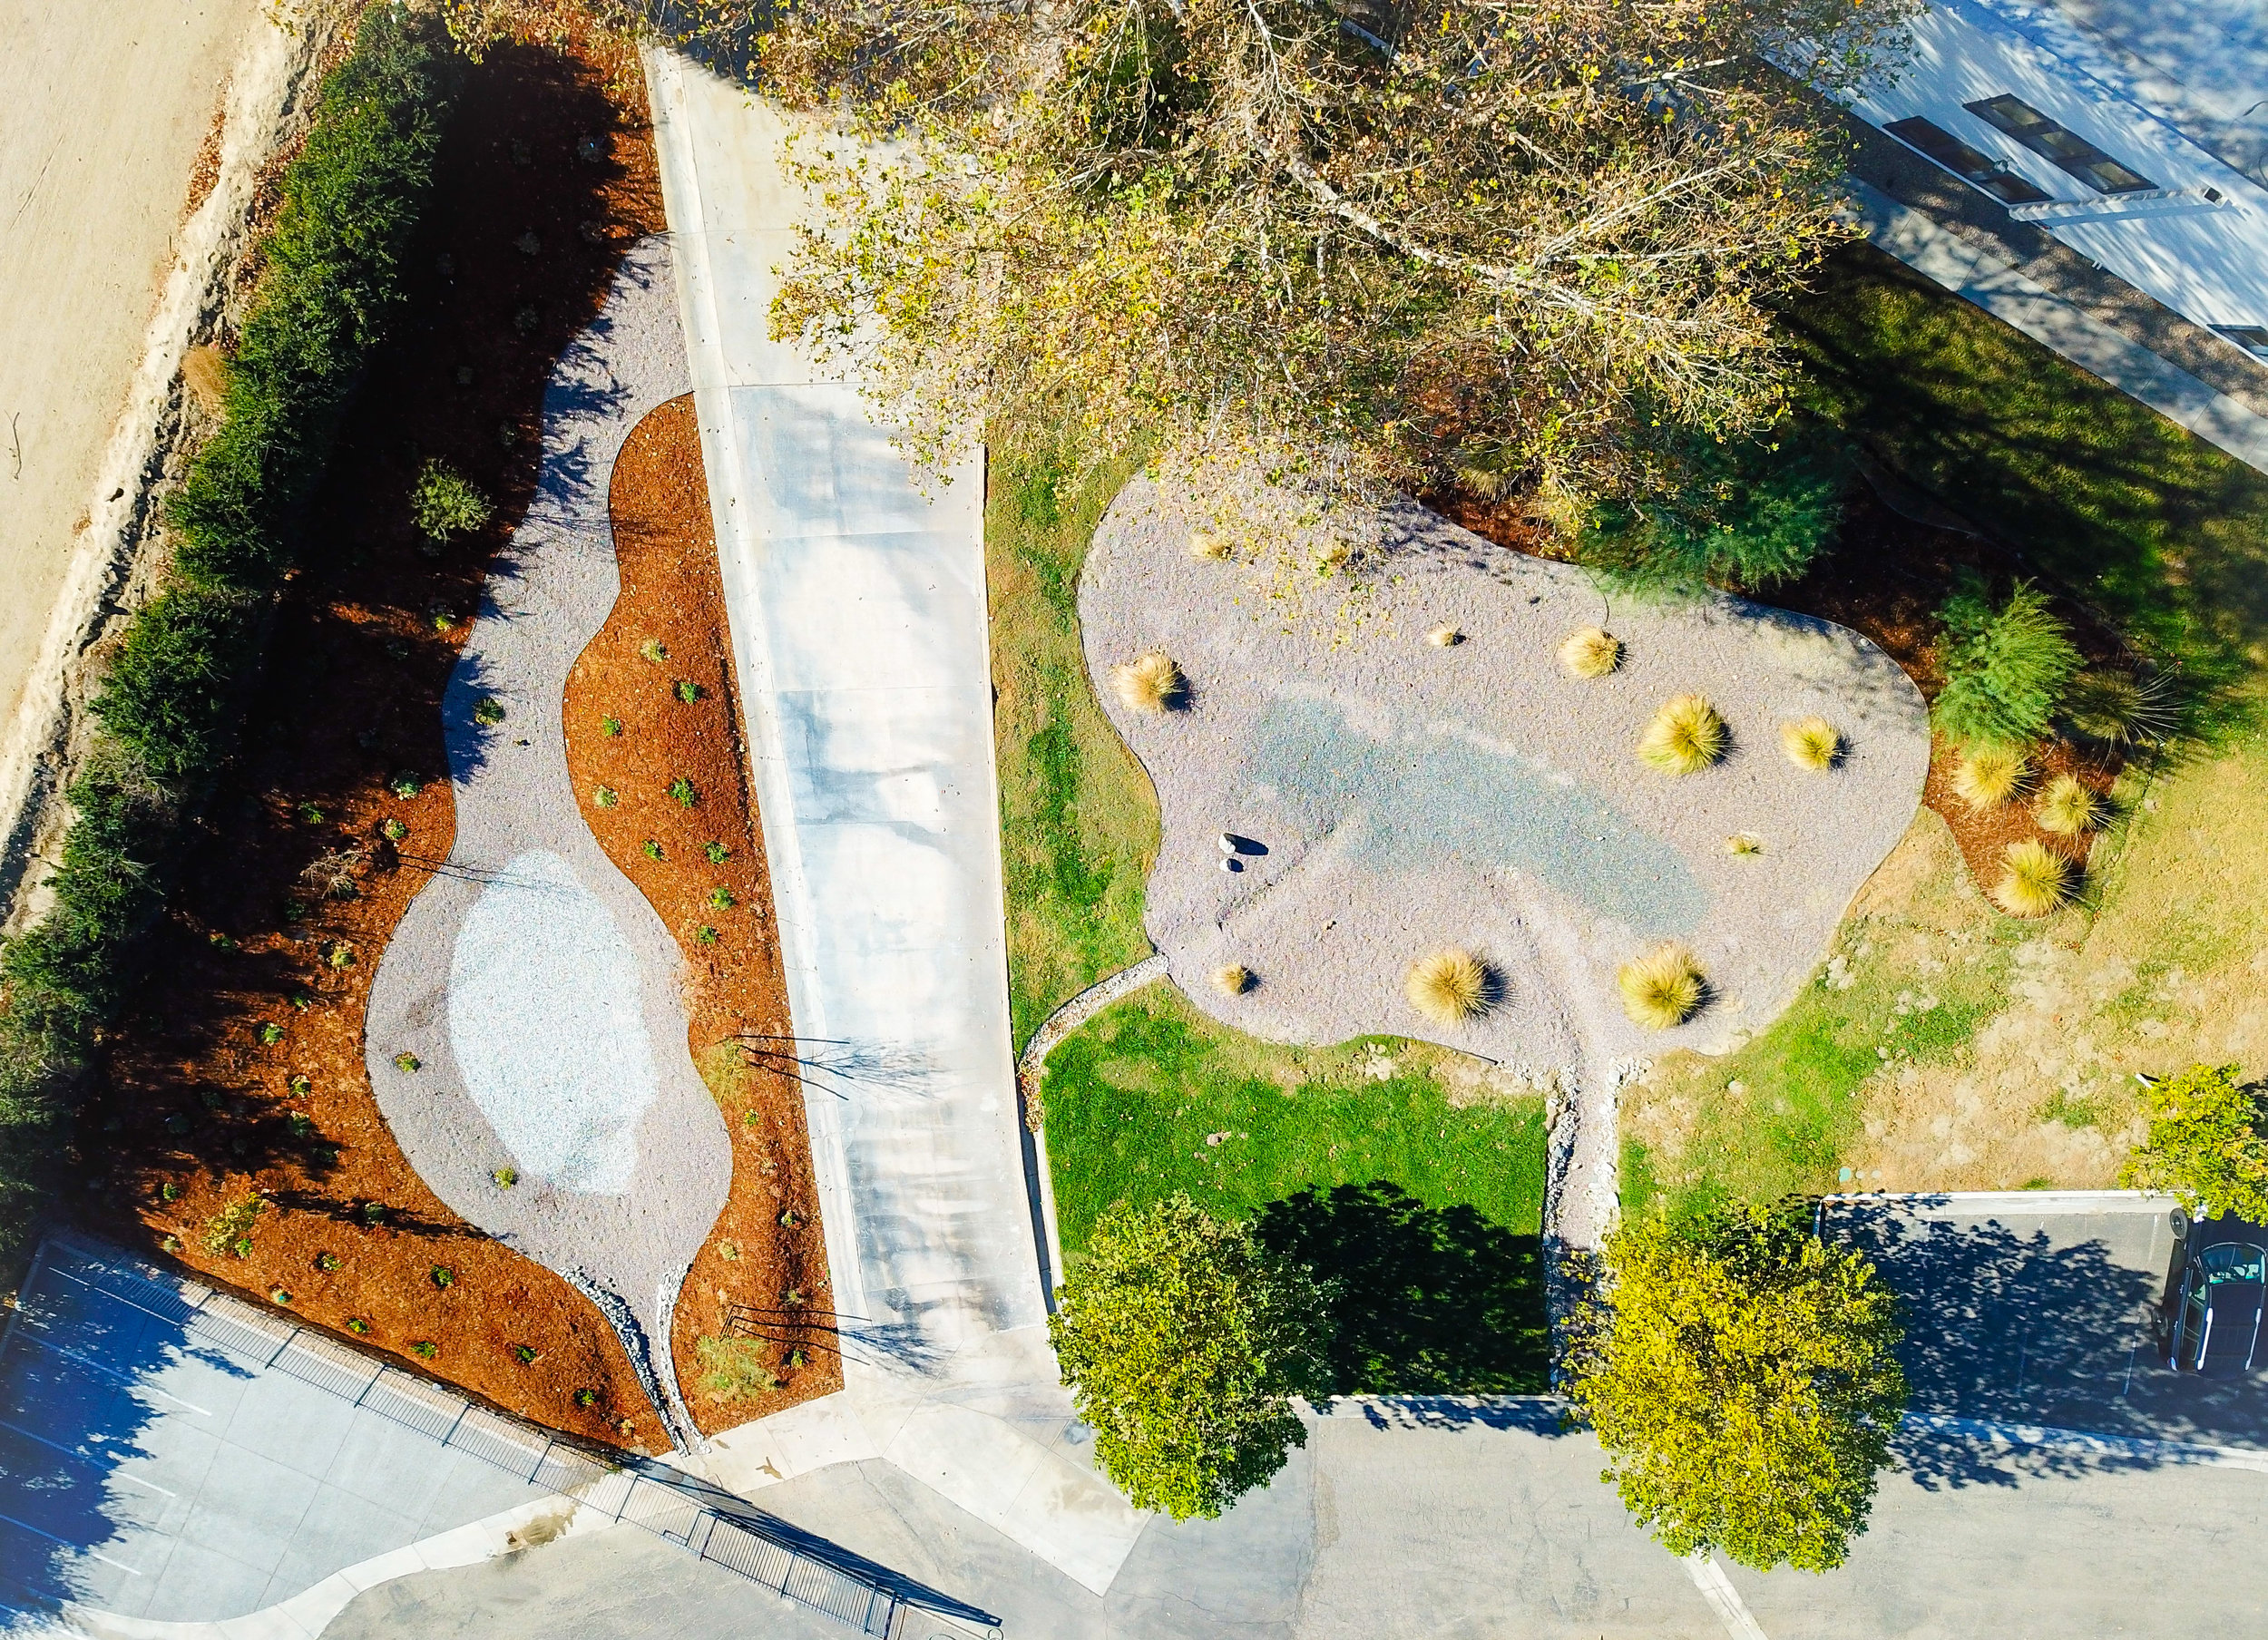 Aerial image of two of CASC's water basins.